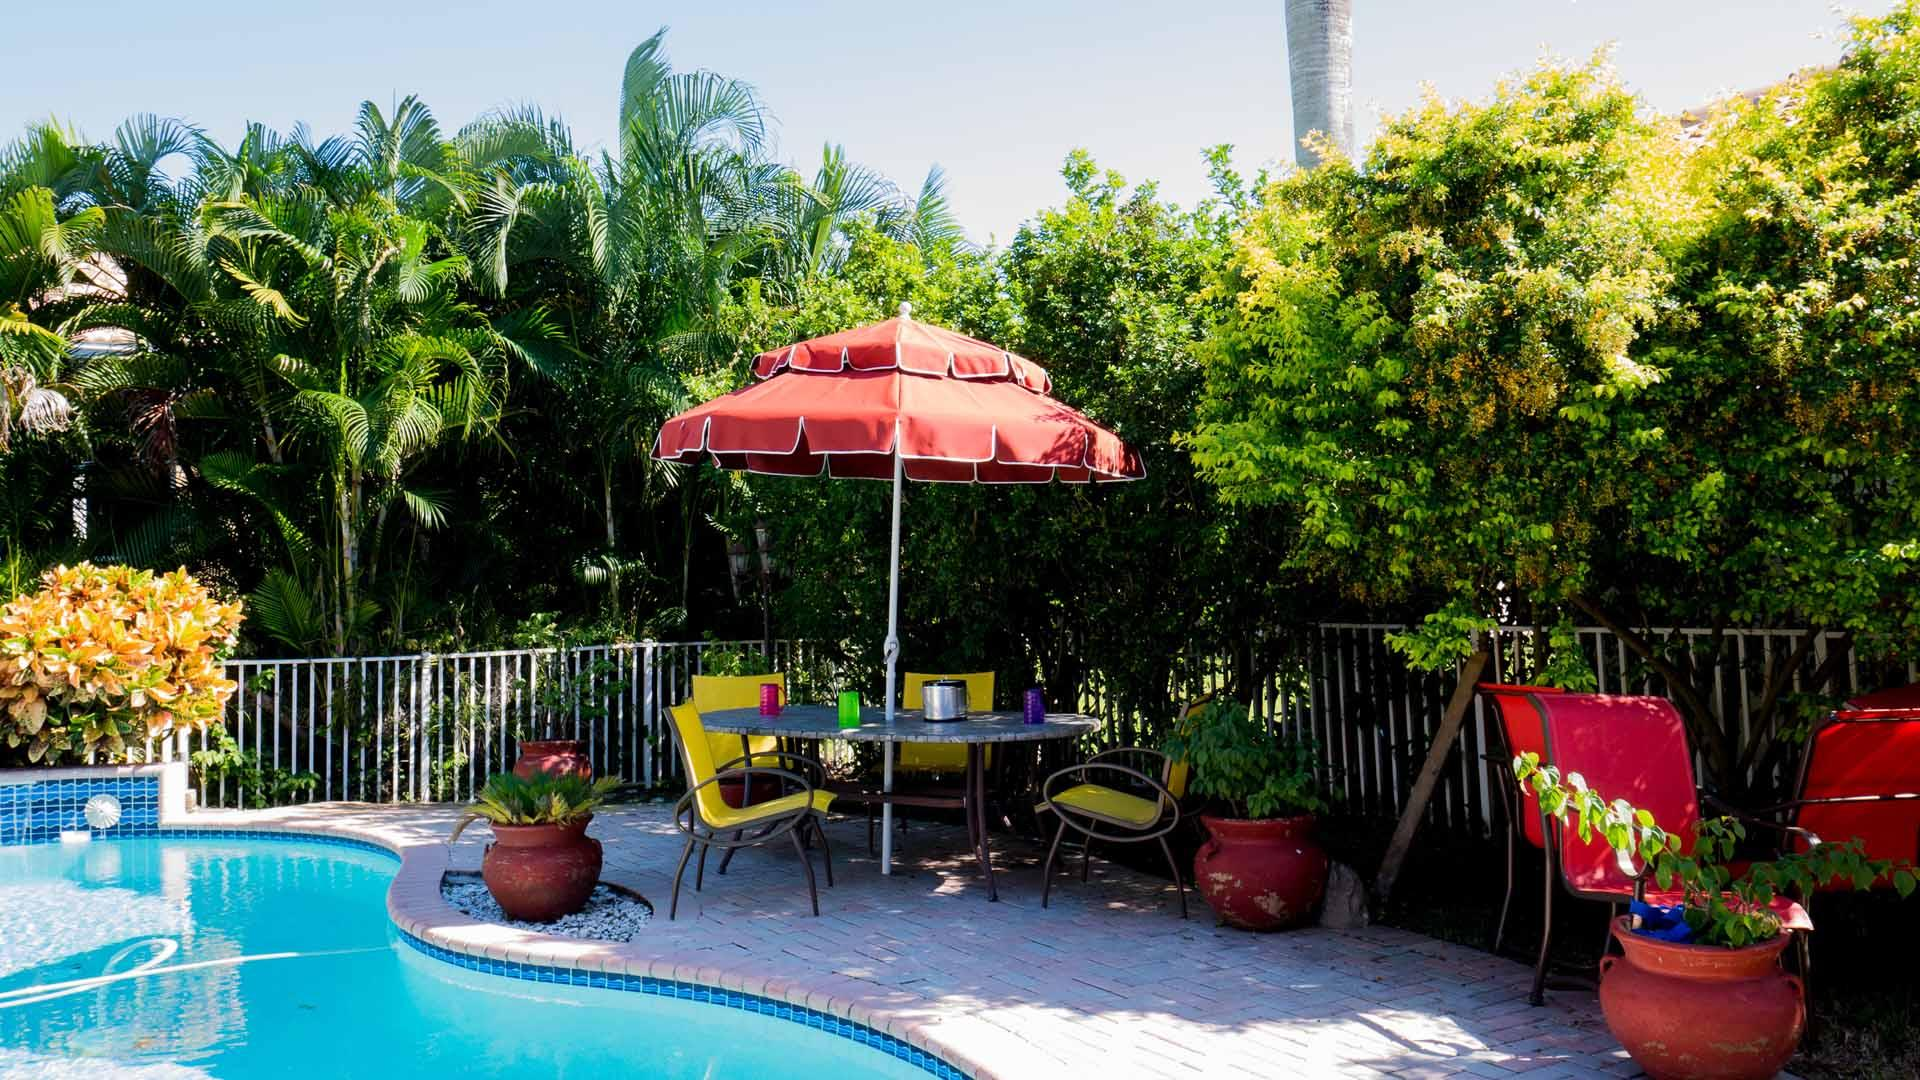 Patio Umbrella 7.50 to 9.00 Ft by 8 Ribs, Doule Tier, Crank or Push-up, Fiberglass Ribs, Canvas, Aluminum Pole (1 or 2 Piece Pole)